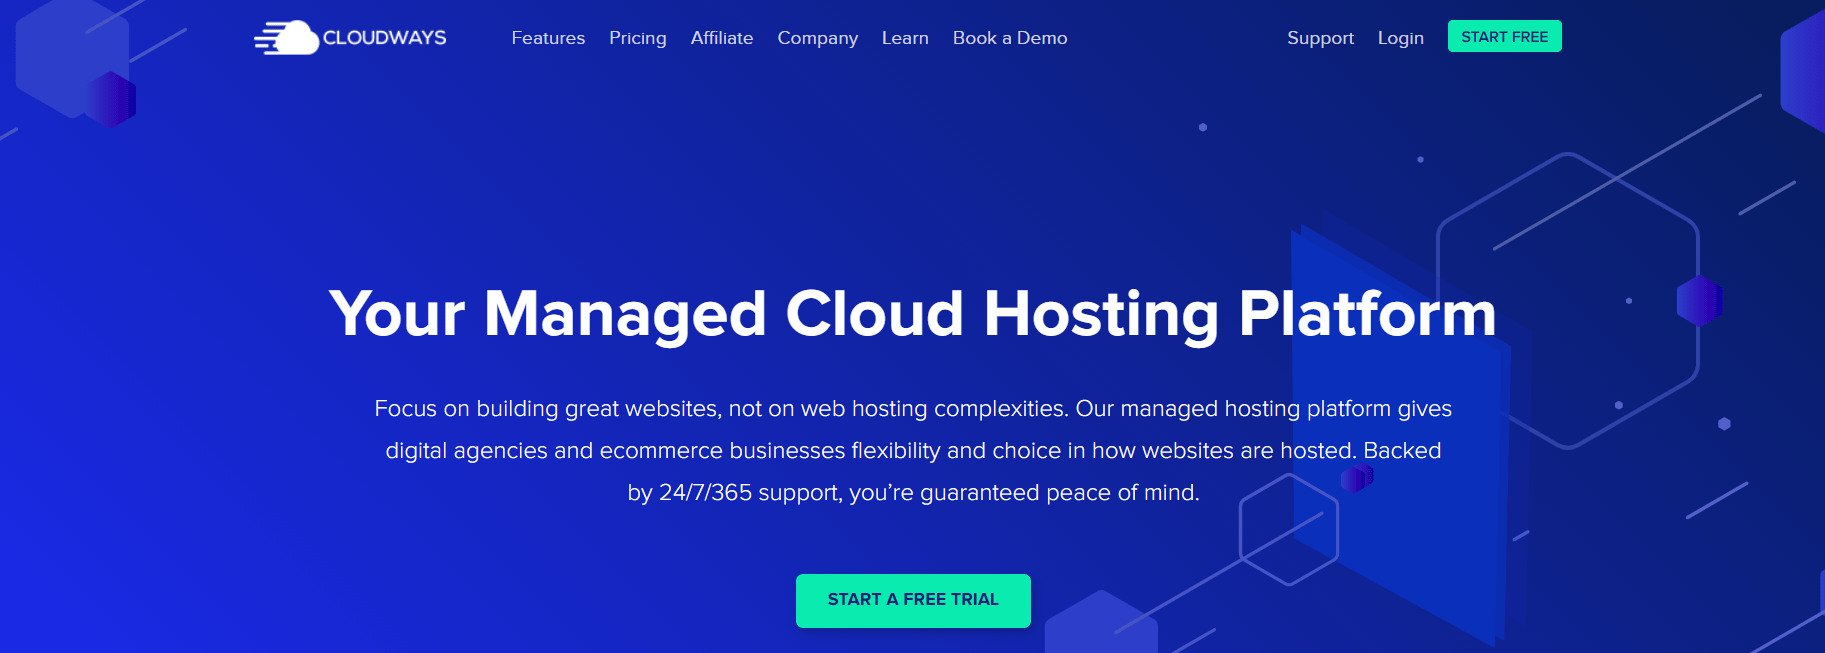 The Cloudways homepage.